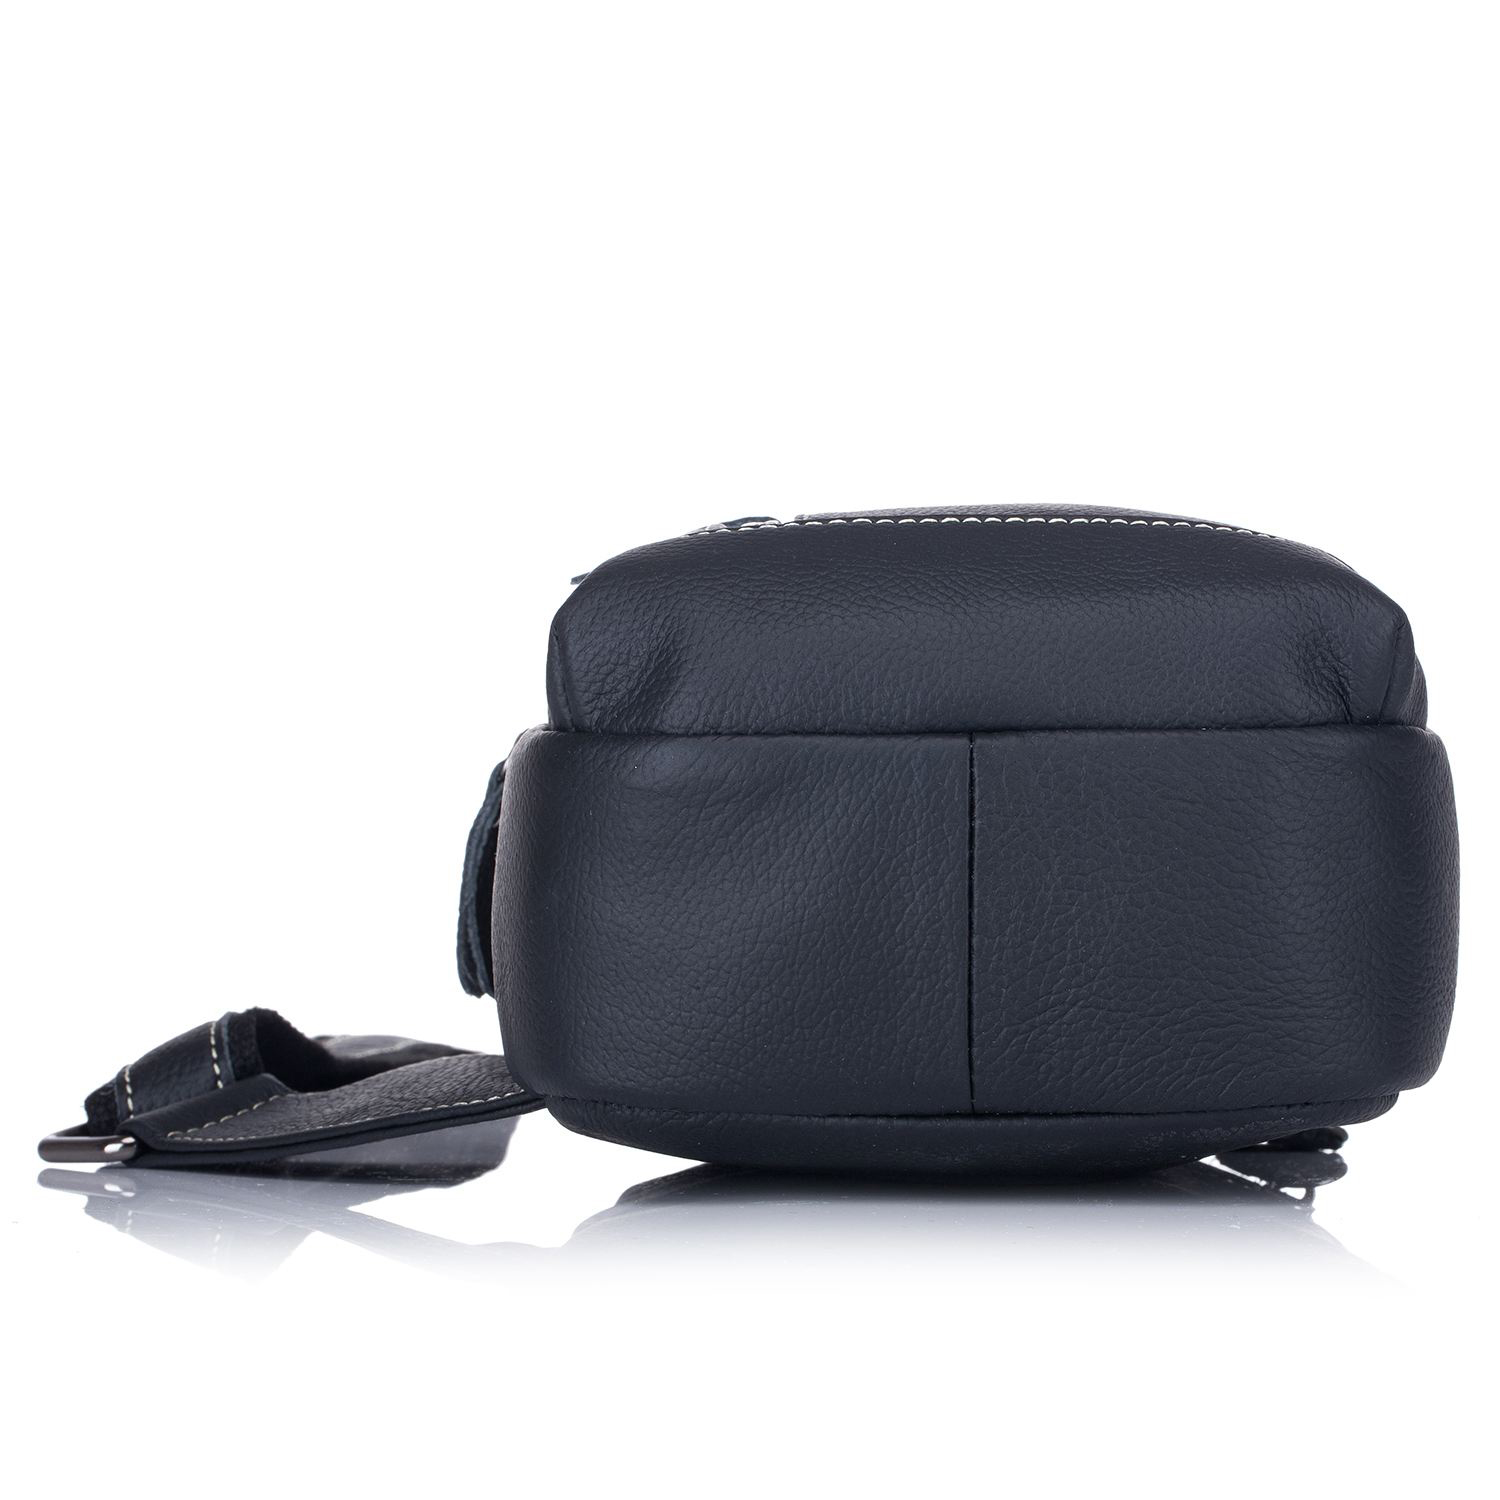 626c3b82be Men s Sling Bag Genuine Leather Chest Shoulder Backpack Cross Body Purse  Water Resistant Anti Theft For Travel School on Aliexpress.com